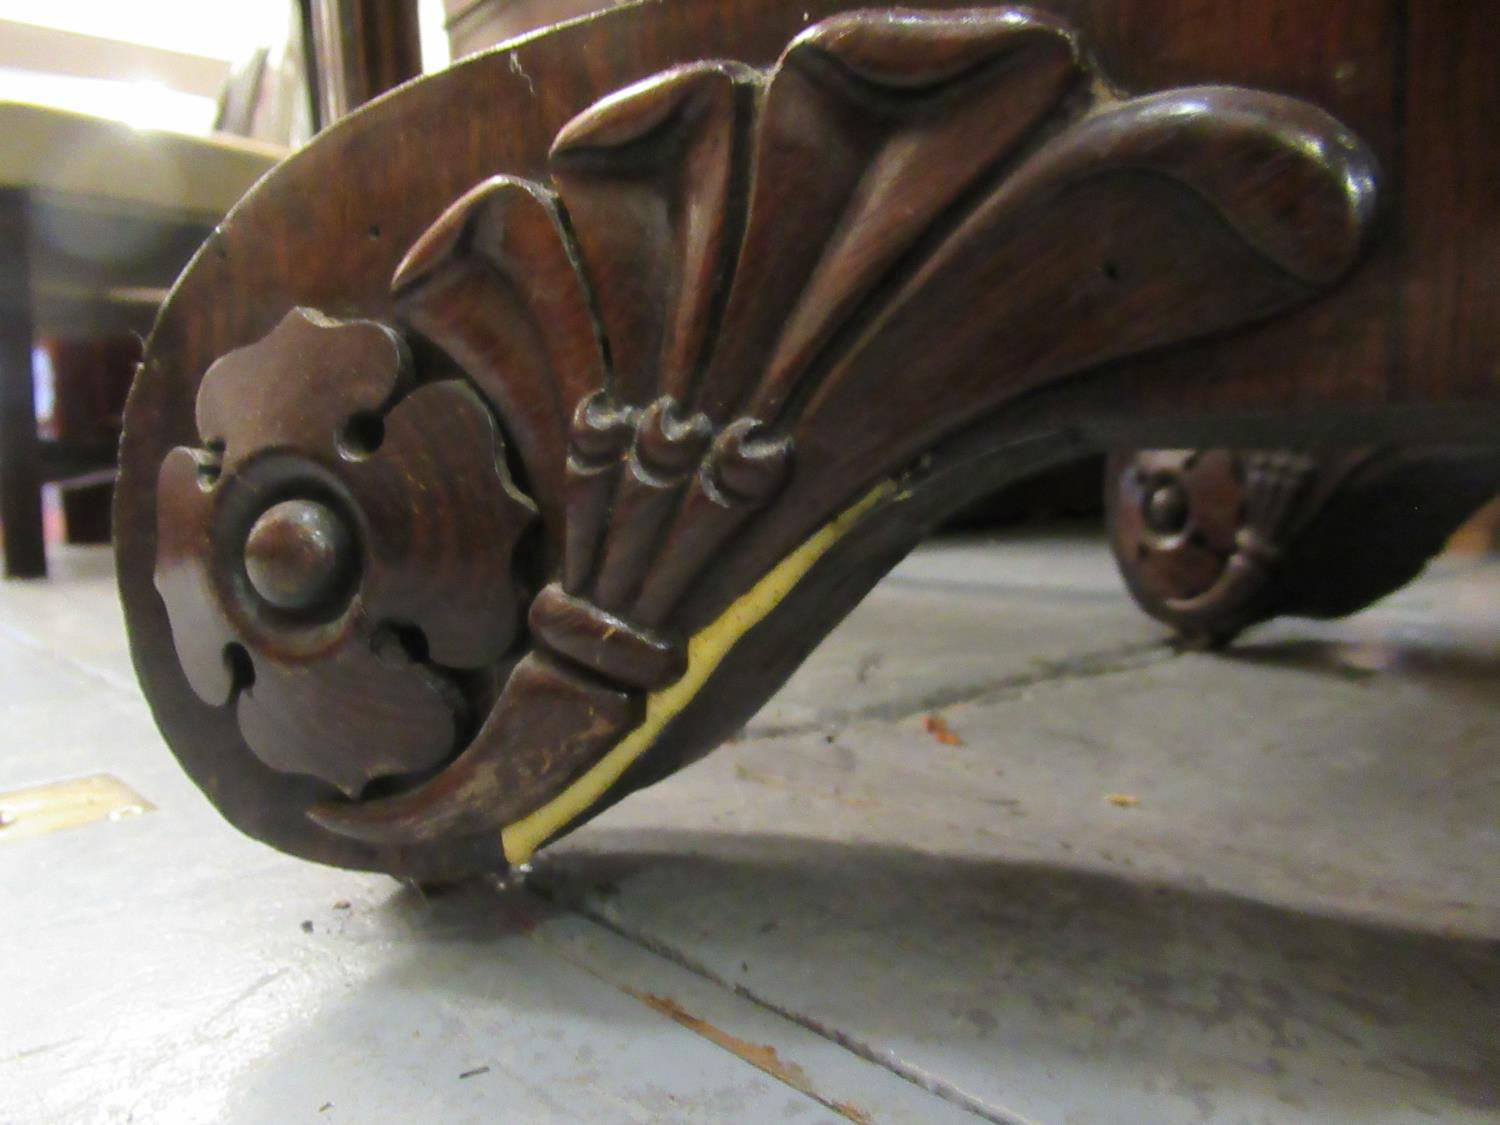 William IV rosewood fold-over card table with tulip carved column support and quadruped base, - Image 10 of 10